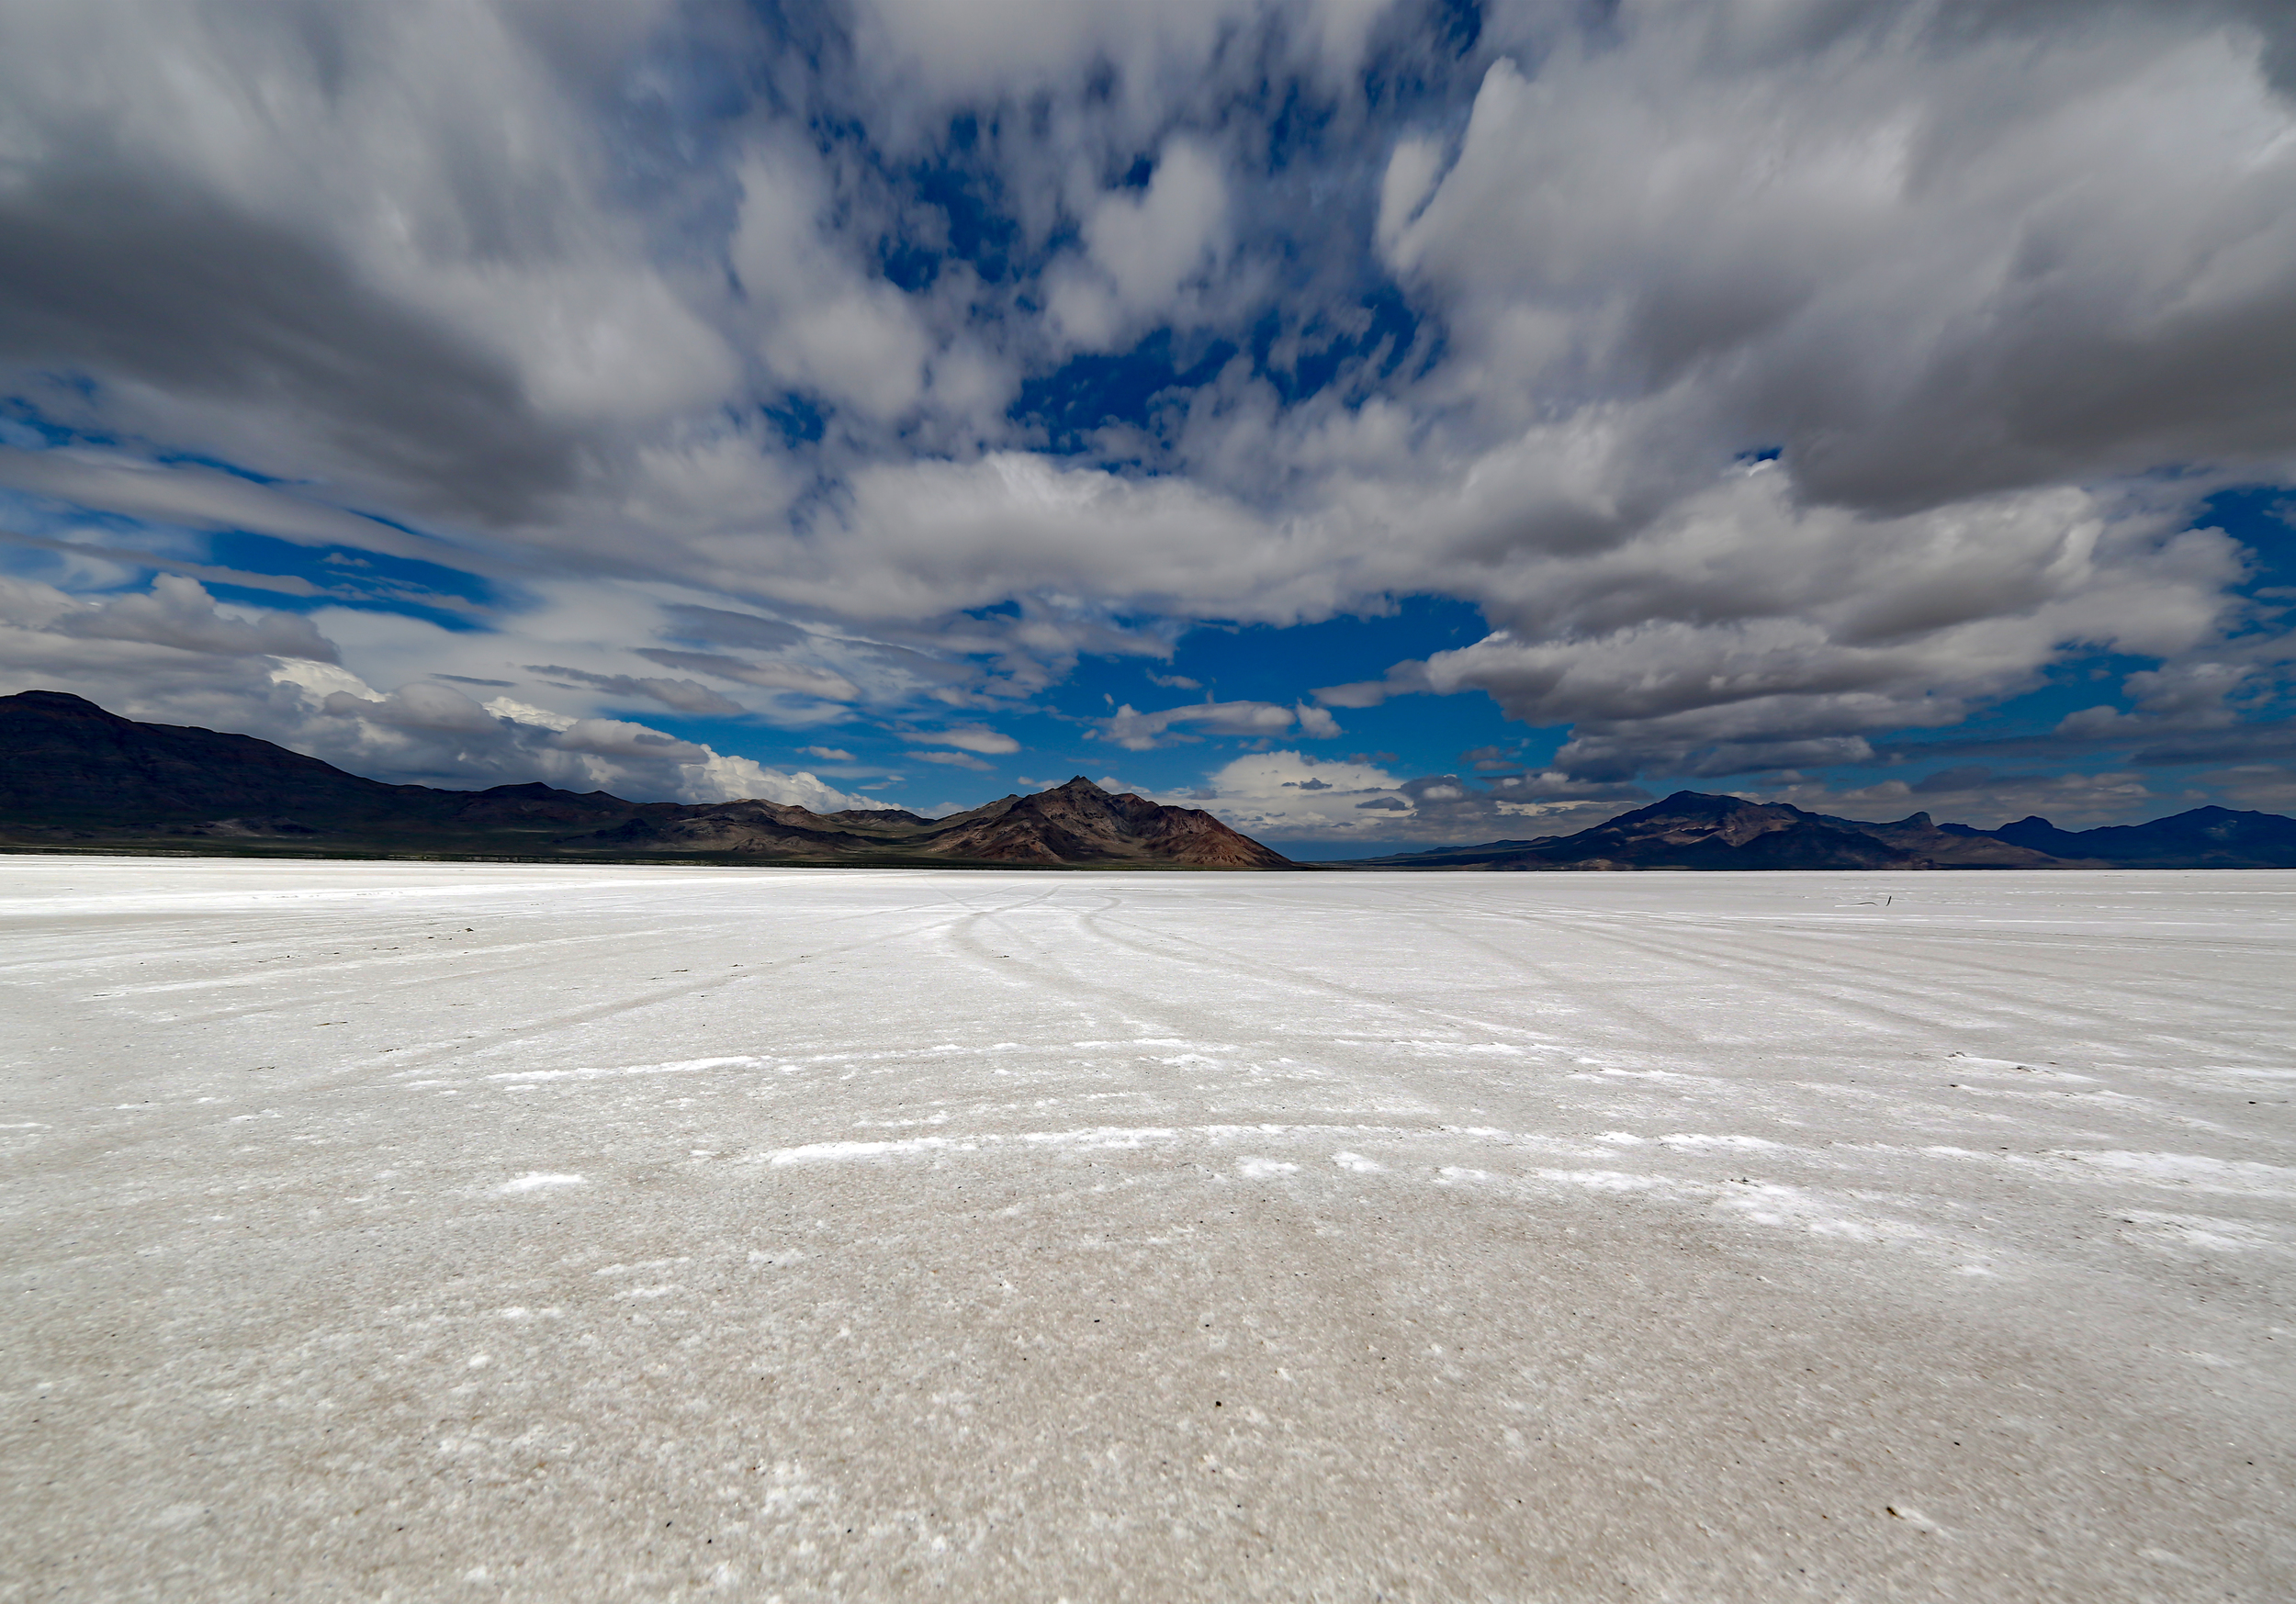 The salt flats are surrounded by unpopulated mountains rife with caverns and canyons for the adventurous traveler. It is not good to hike here by yourself or at night as this remote outpost is surrounded by rough terrain.